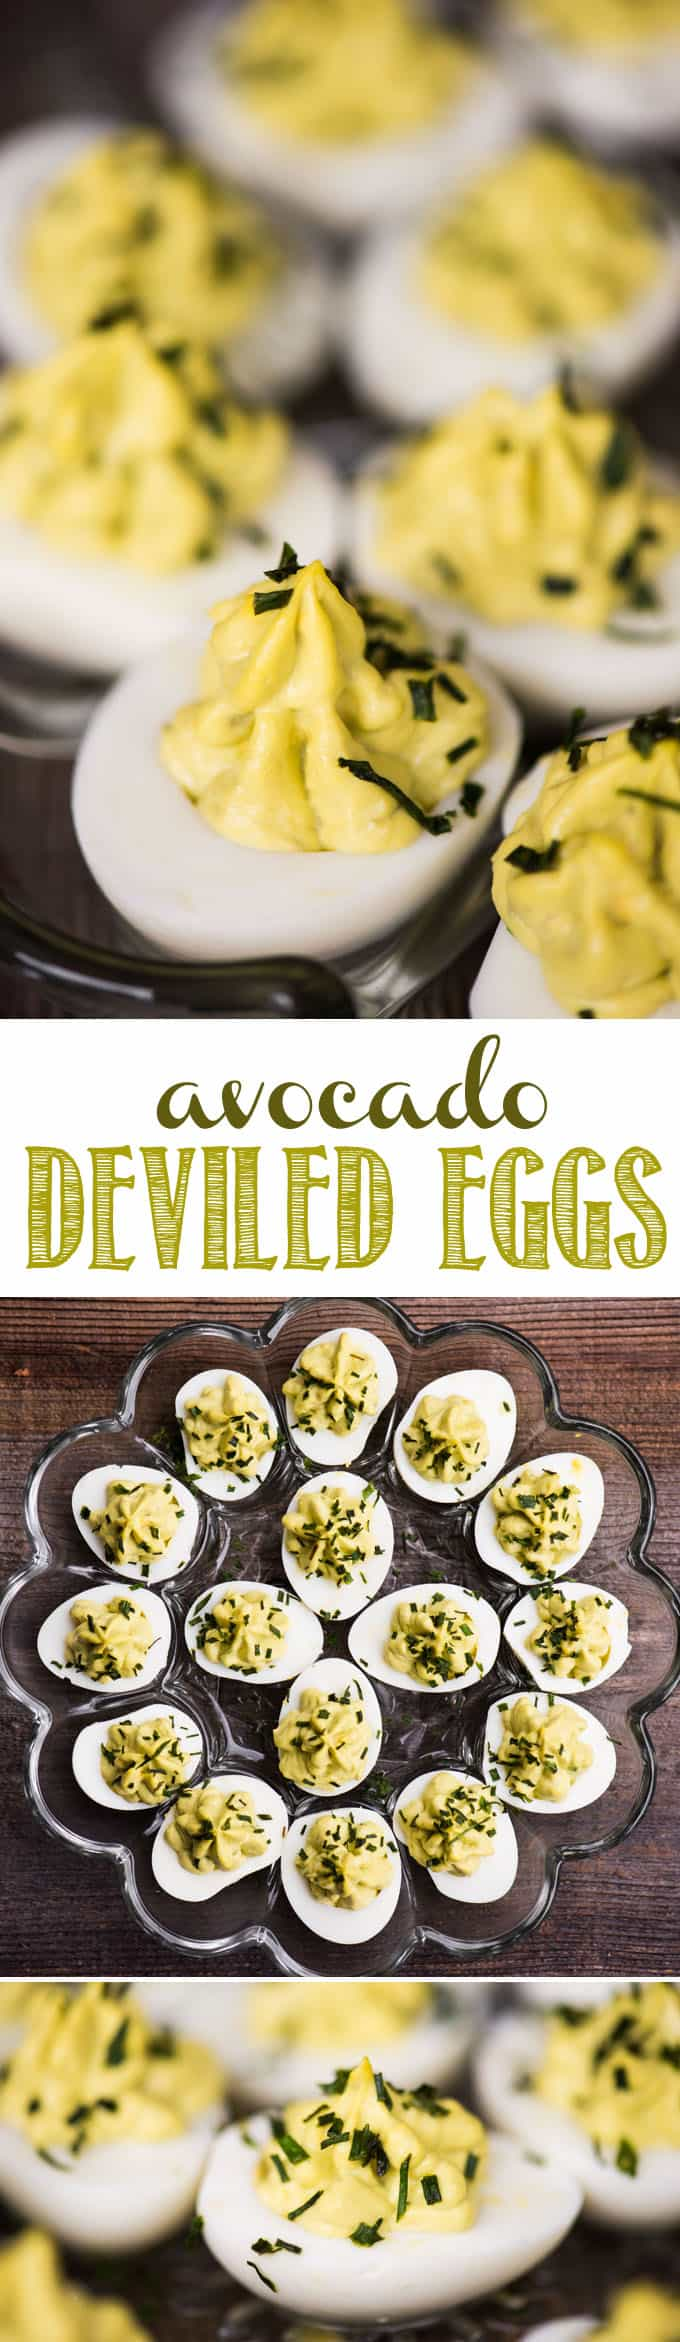 Avocado Deviled Eggs are a healthy spin on classic deviled eggs. Great for parties or a protein filled keto-friendly snack - you'll love them! #avocado #deviledeggs #keto